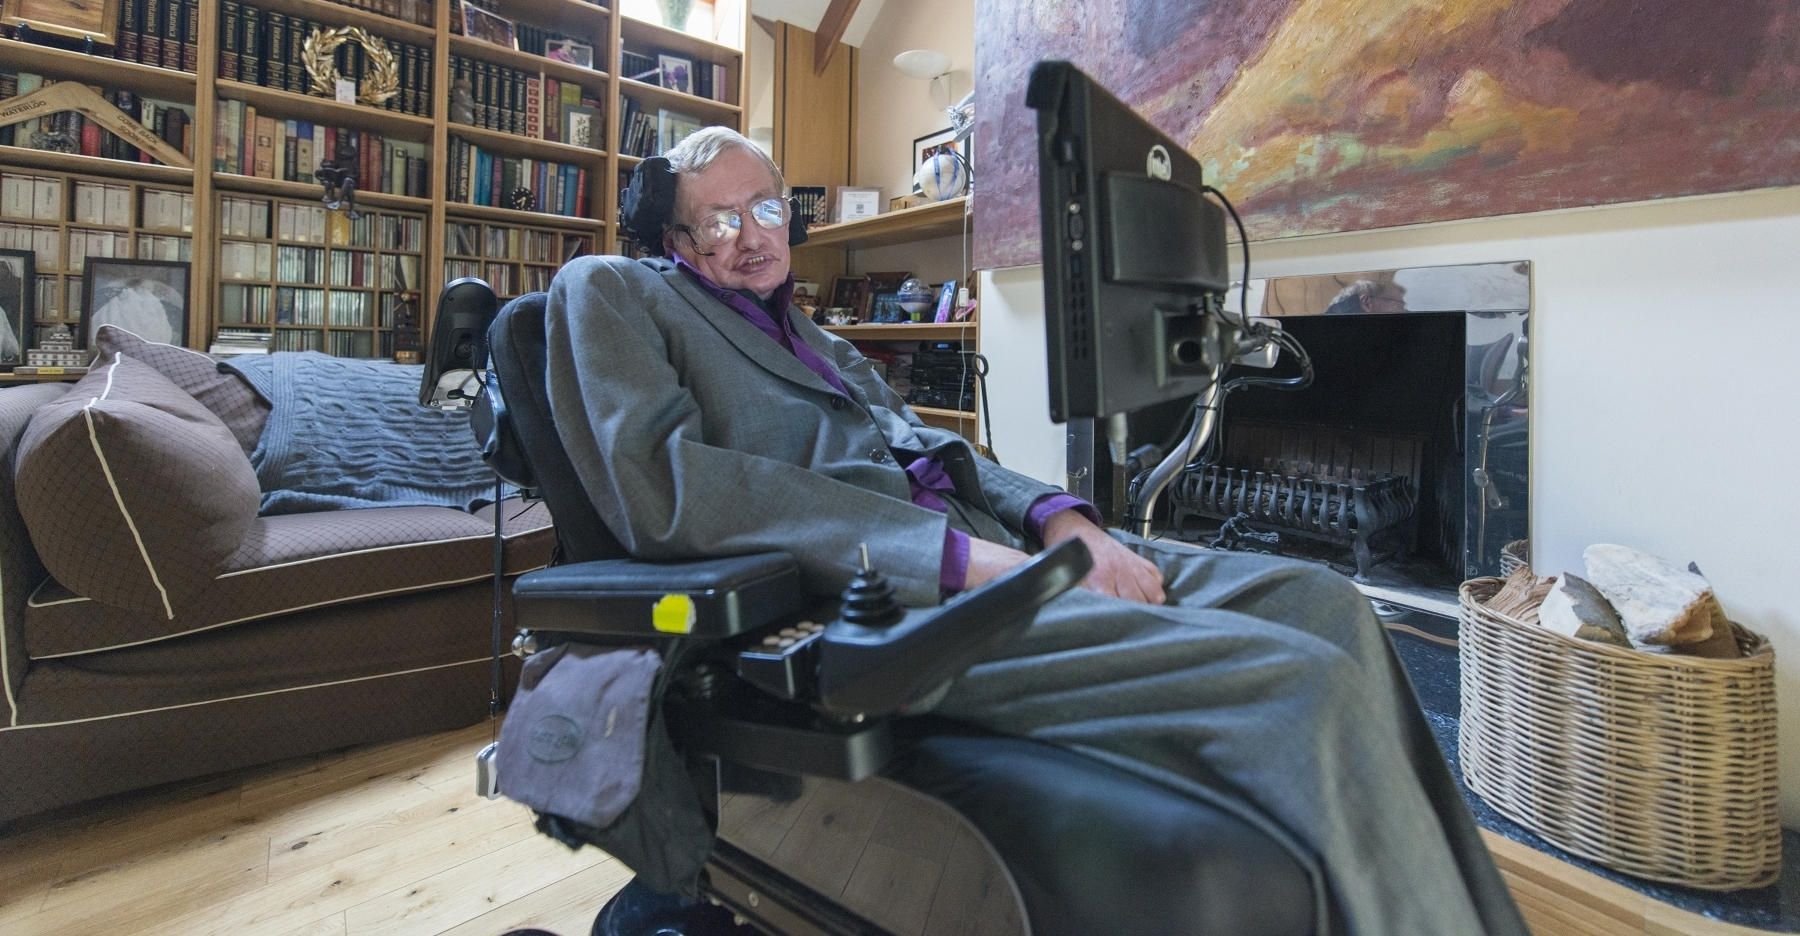 Stephen Hawking in his home library (Credit: PCWorld.com)